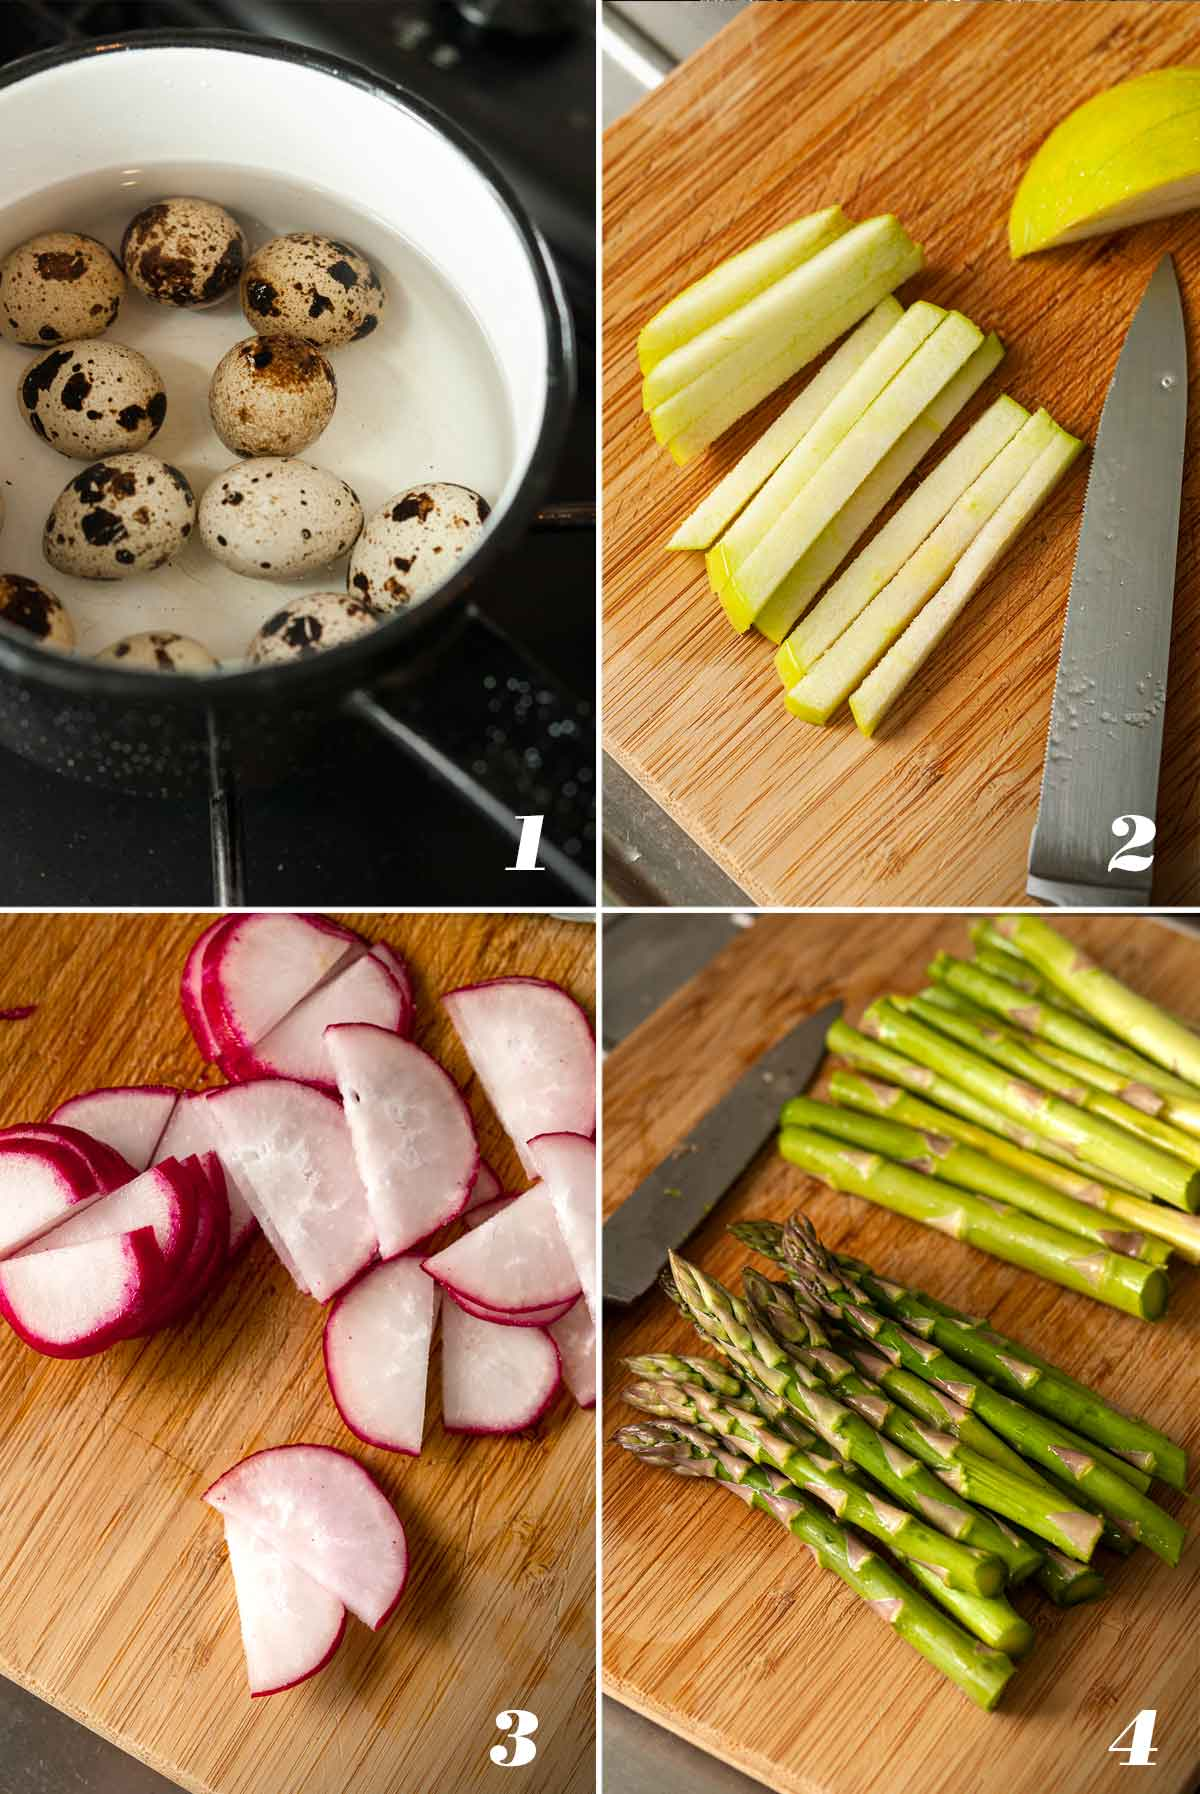 A collage of 4 images showing how to prep ingredients for a salad.